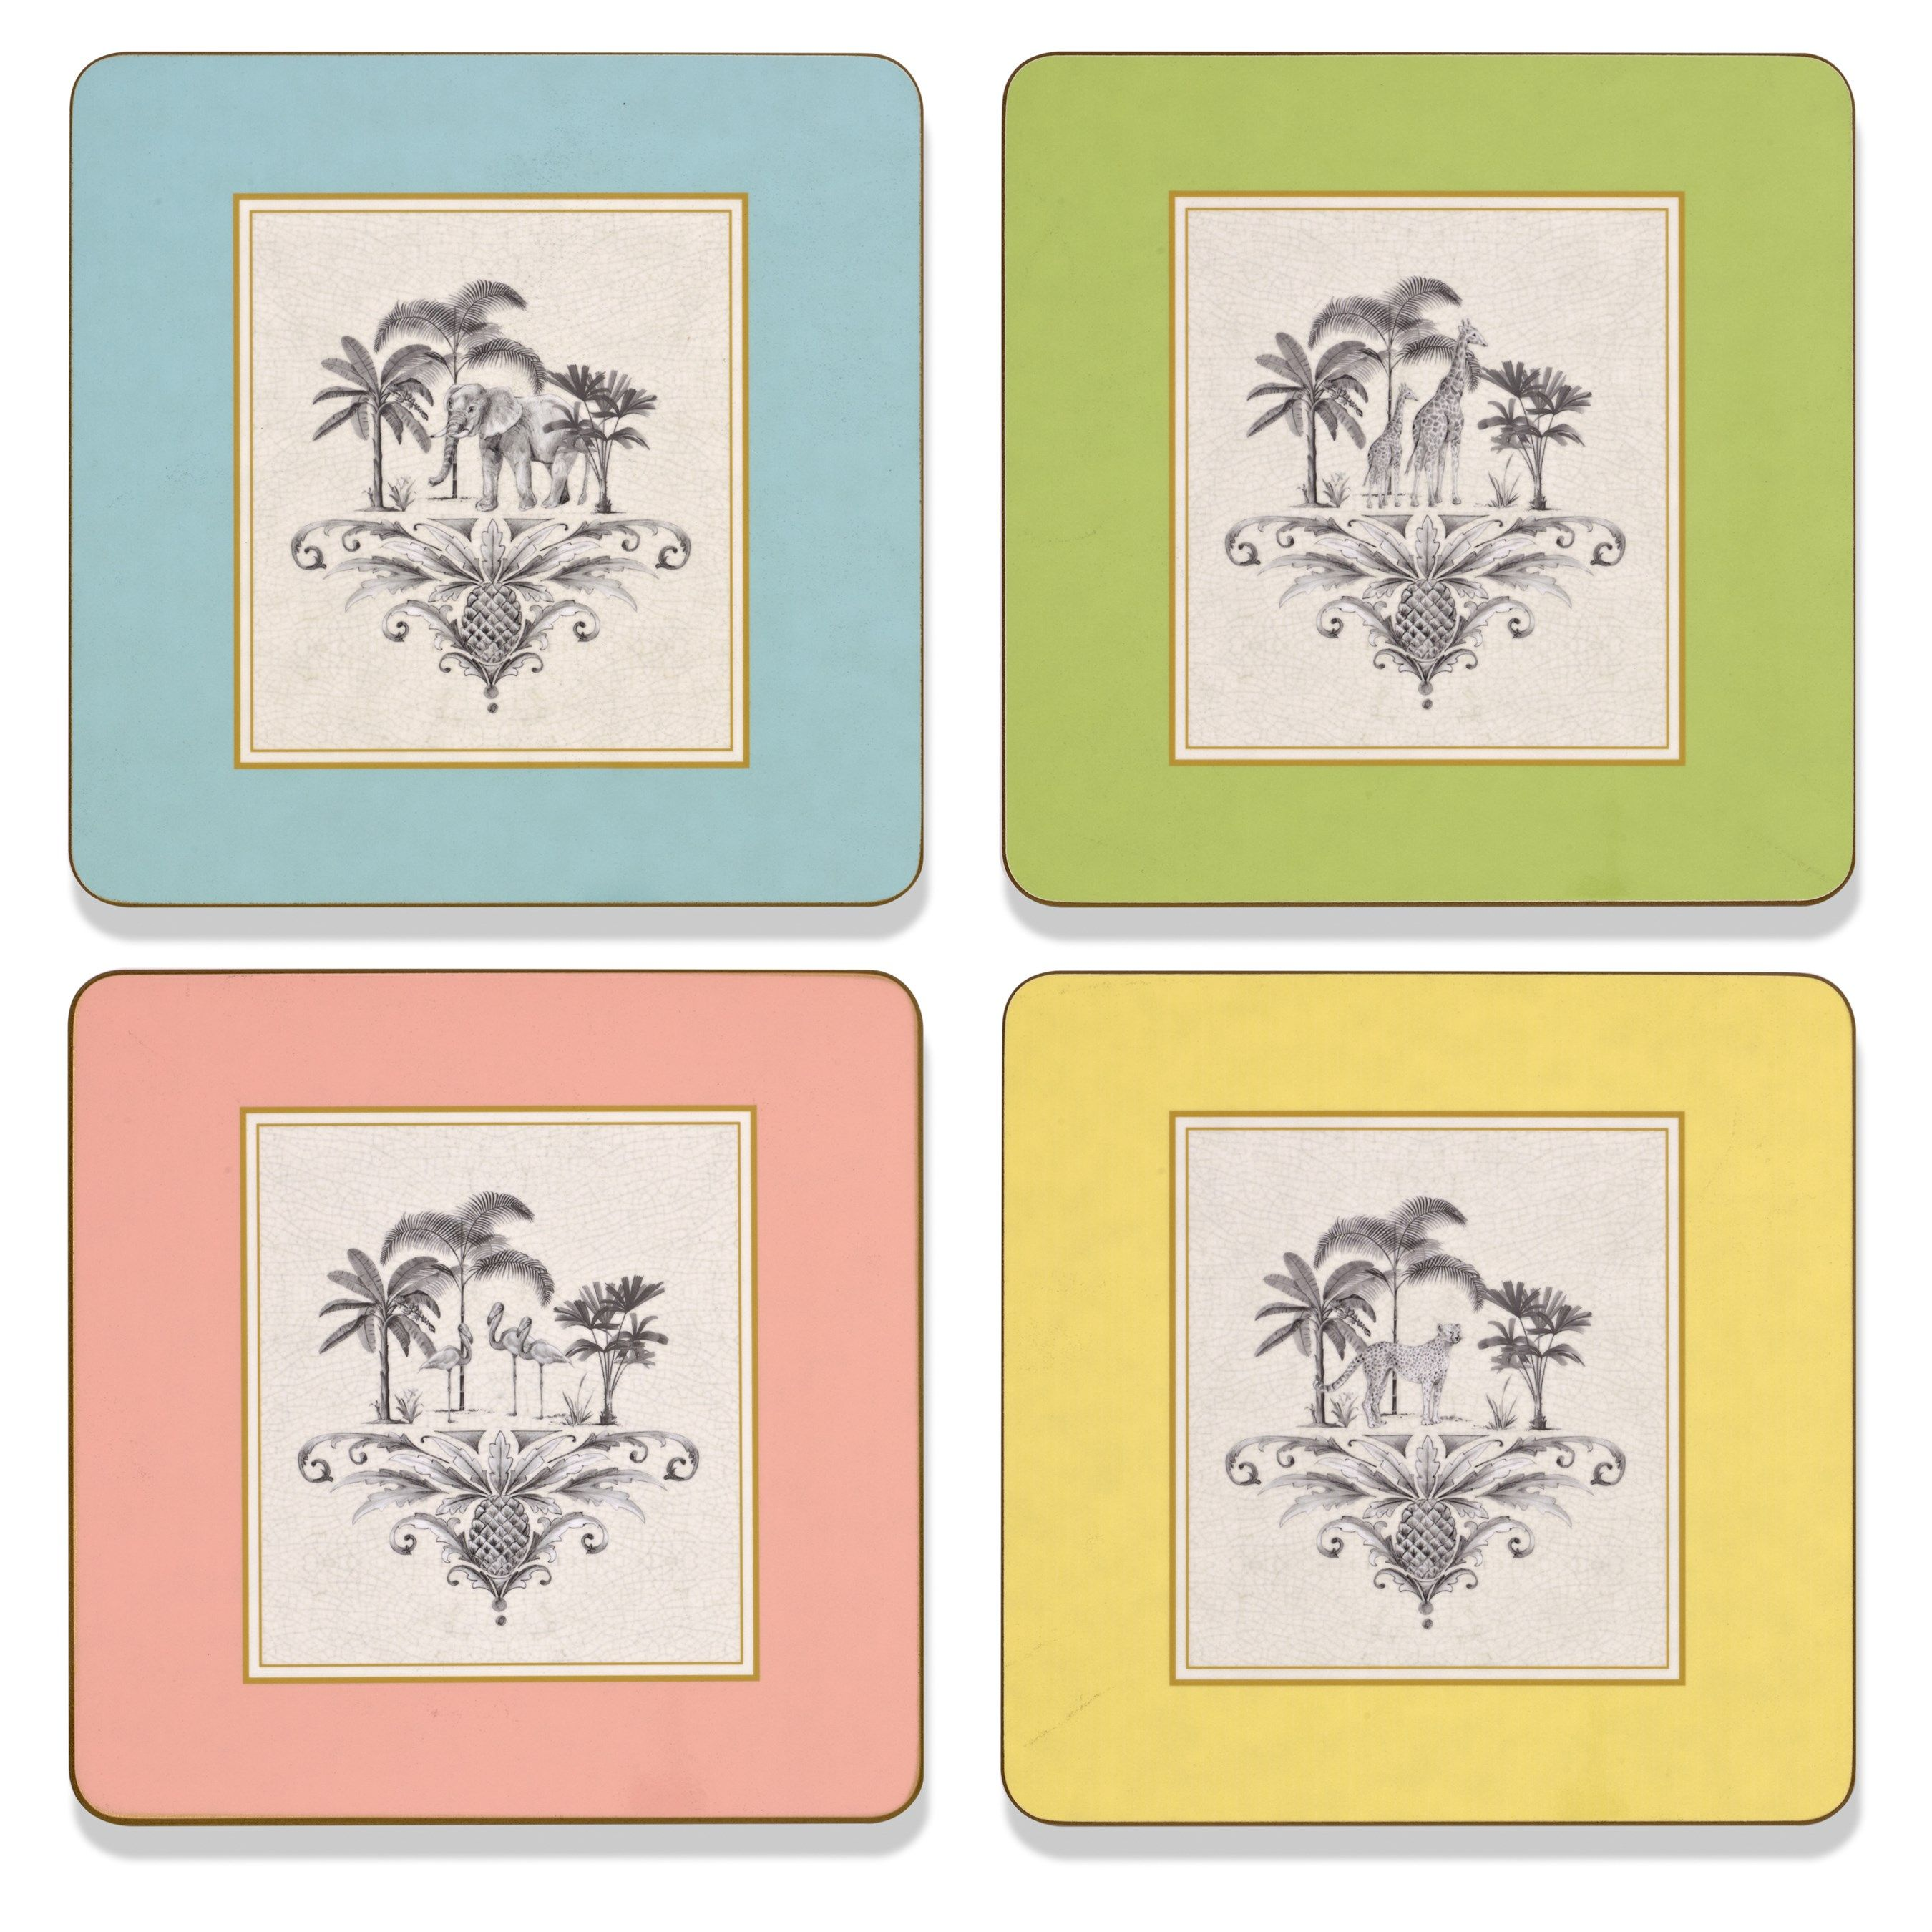 Harlequin Square Coasters Placemats Placemats Coasters Table Accents Tabletop Scullyandscully Com Placemats African Animals Hand Sketch